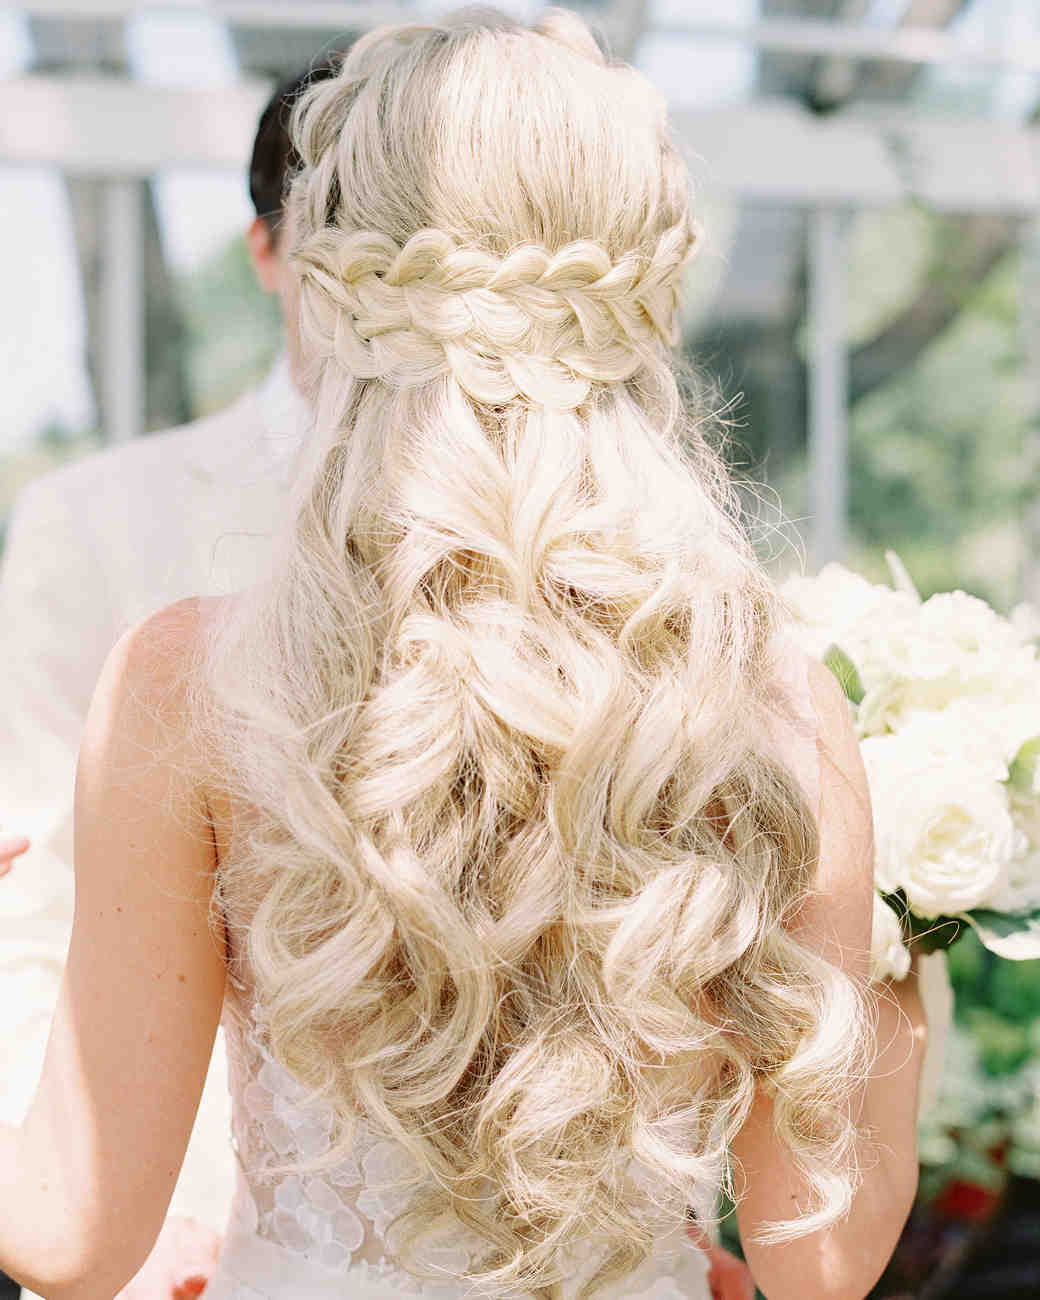 Wedding Hairstyles Bride: 28 Half-Up, Half-Down Wedding Hairstyles We Love